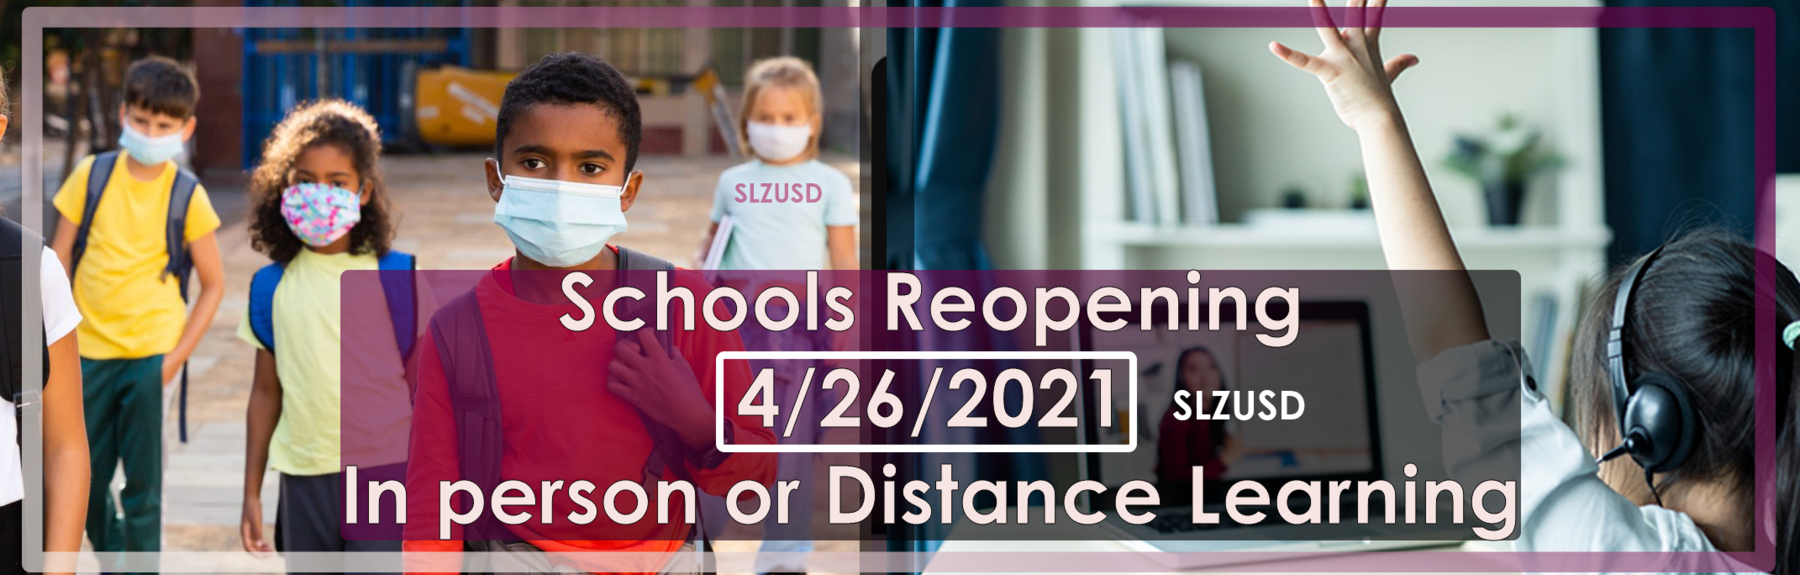 School Reopening 4/26/2021 In person or Distance Learning